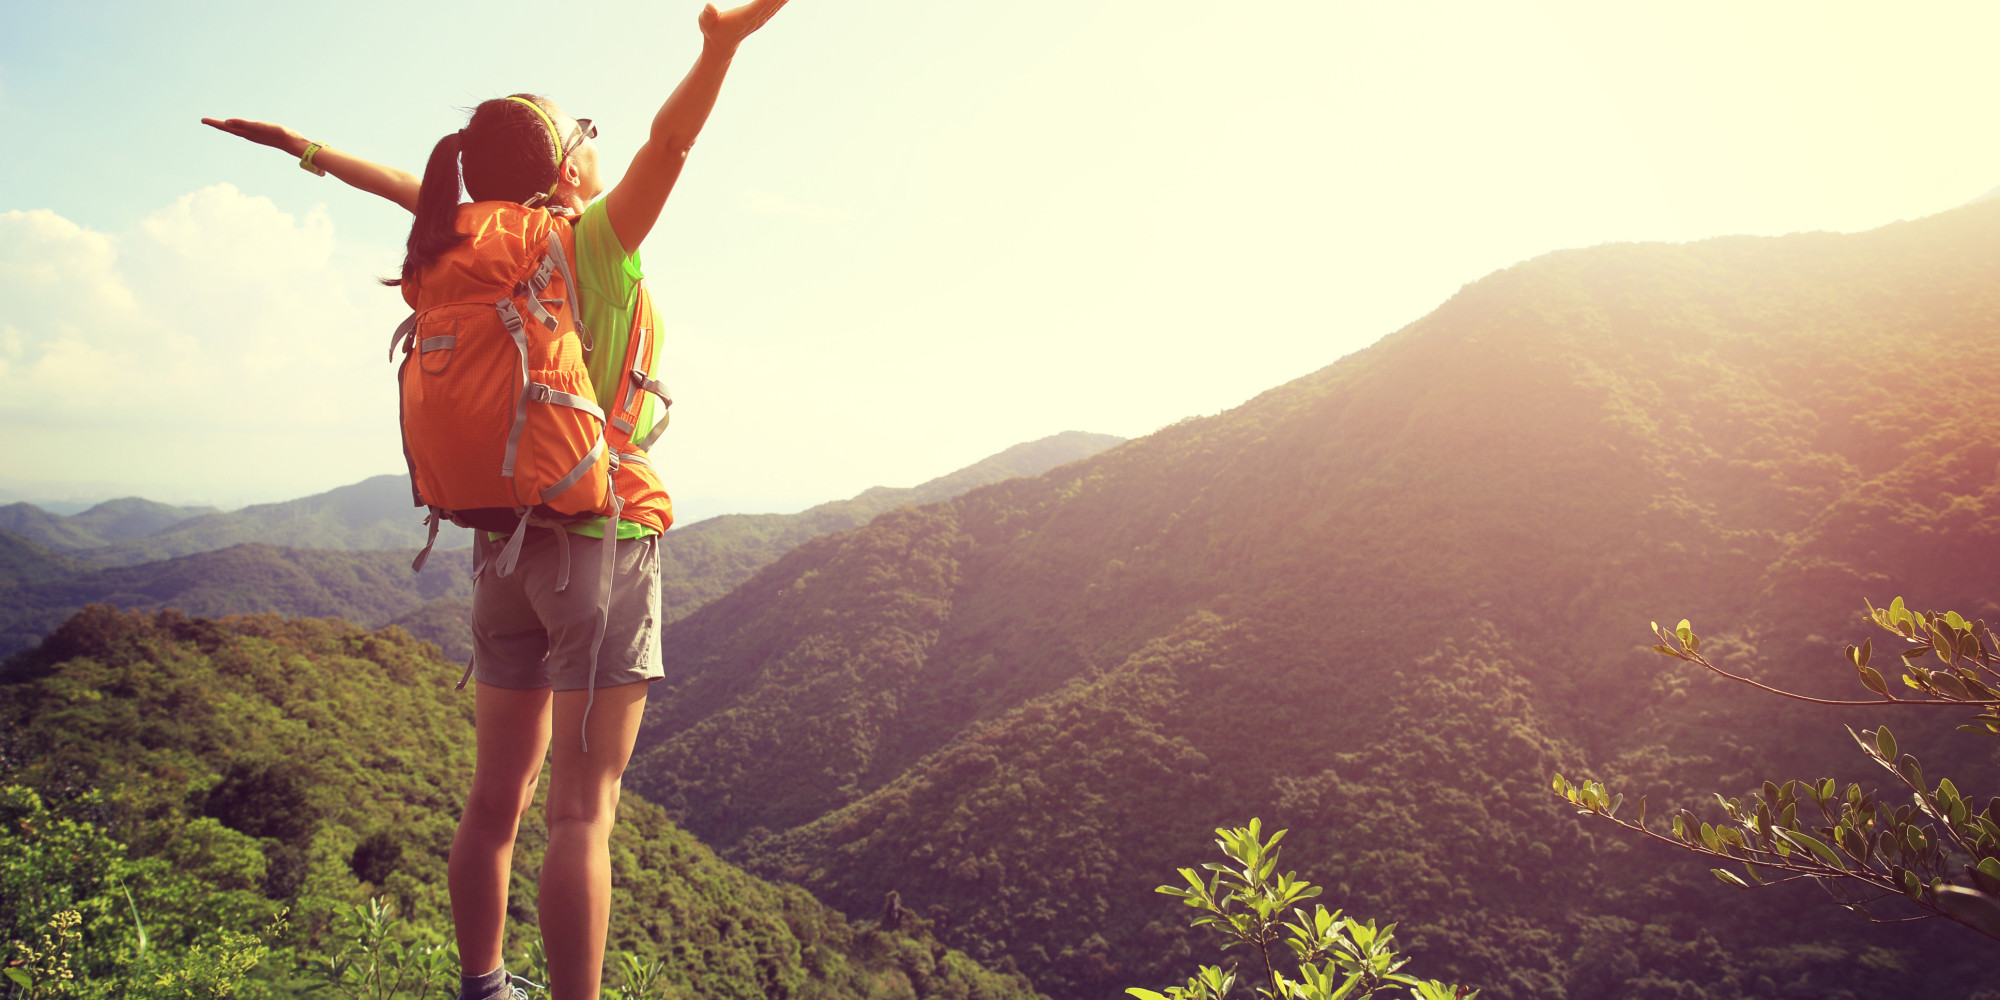 Here are 7 Reasons Why Traveling Alone Can Be Good And A Bad Thing Both! 2